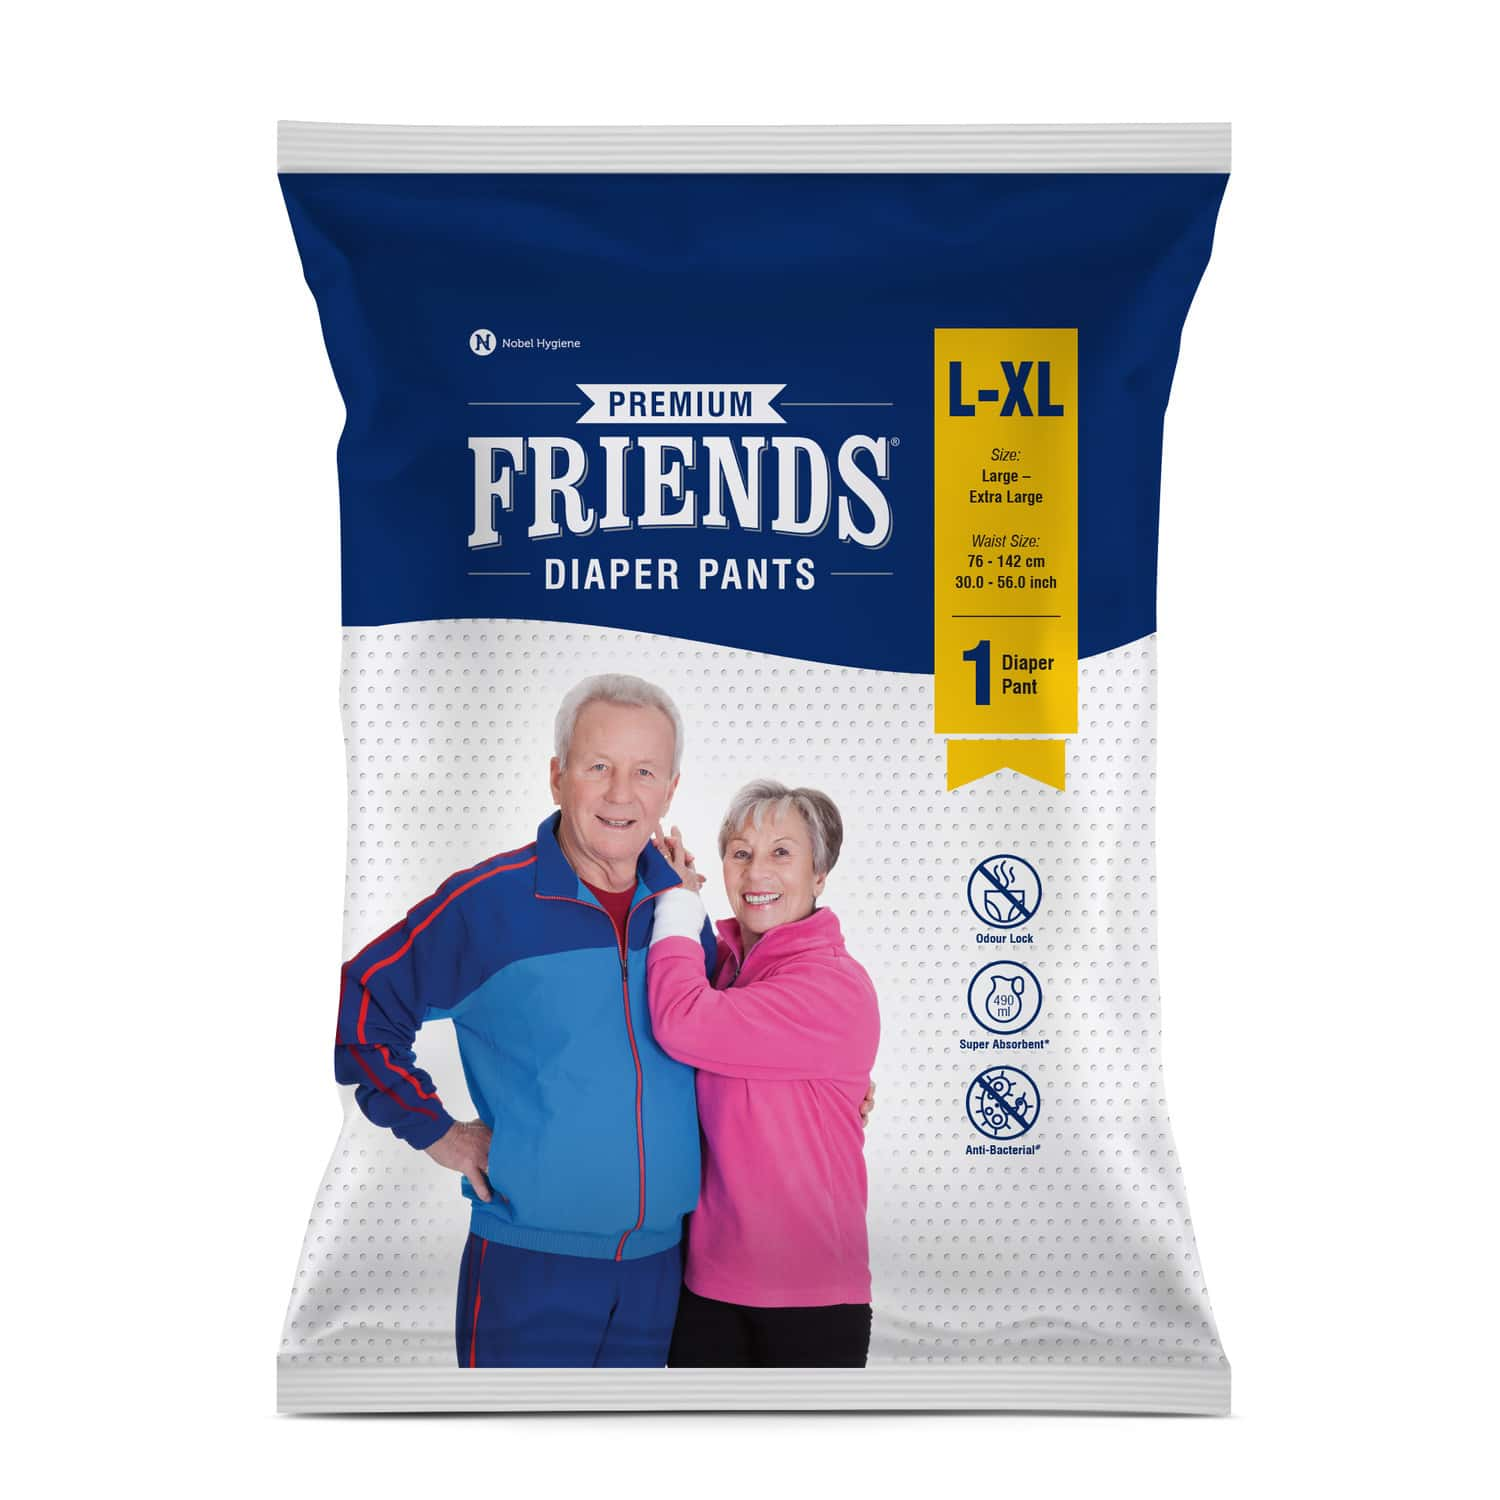 Friends Premium Adult Diaper Pants Large Waist 30-56 Inch, High Absorbency Flexible Waist Band 1's Pack